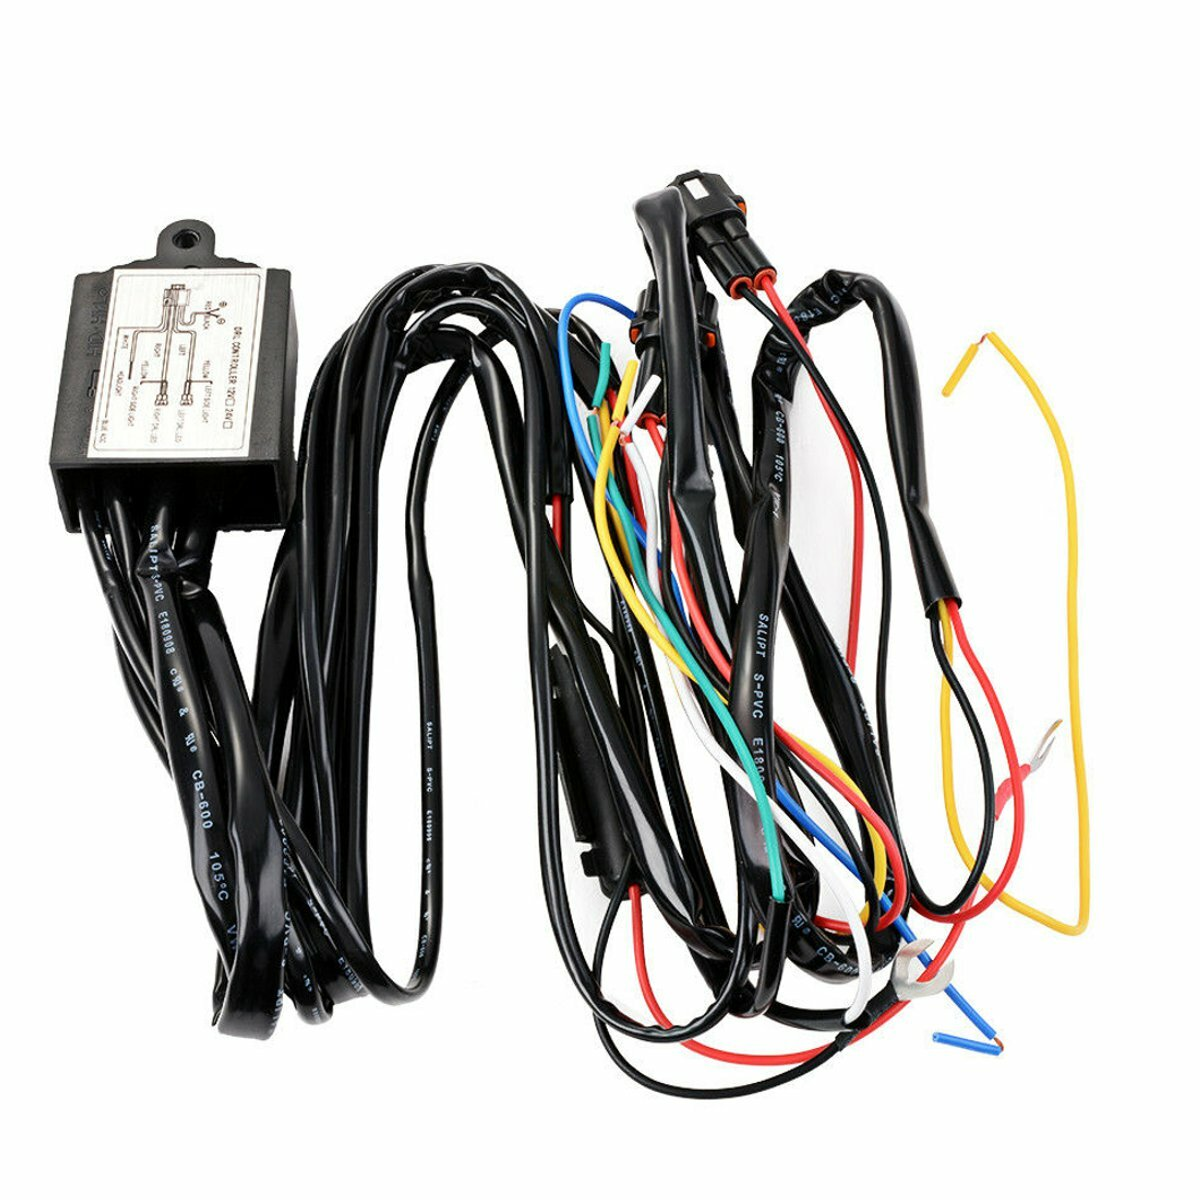 12V DRL Dimmer LED Dæmpningsrelæ Dagtid Løbelygte Auto On / Off Switch Harness Med Flash Slå Signalforsinkelsesfunktion